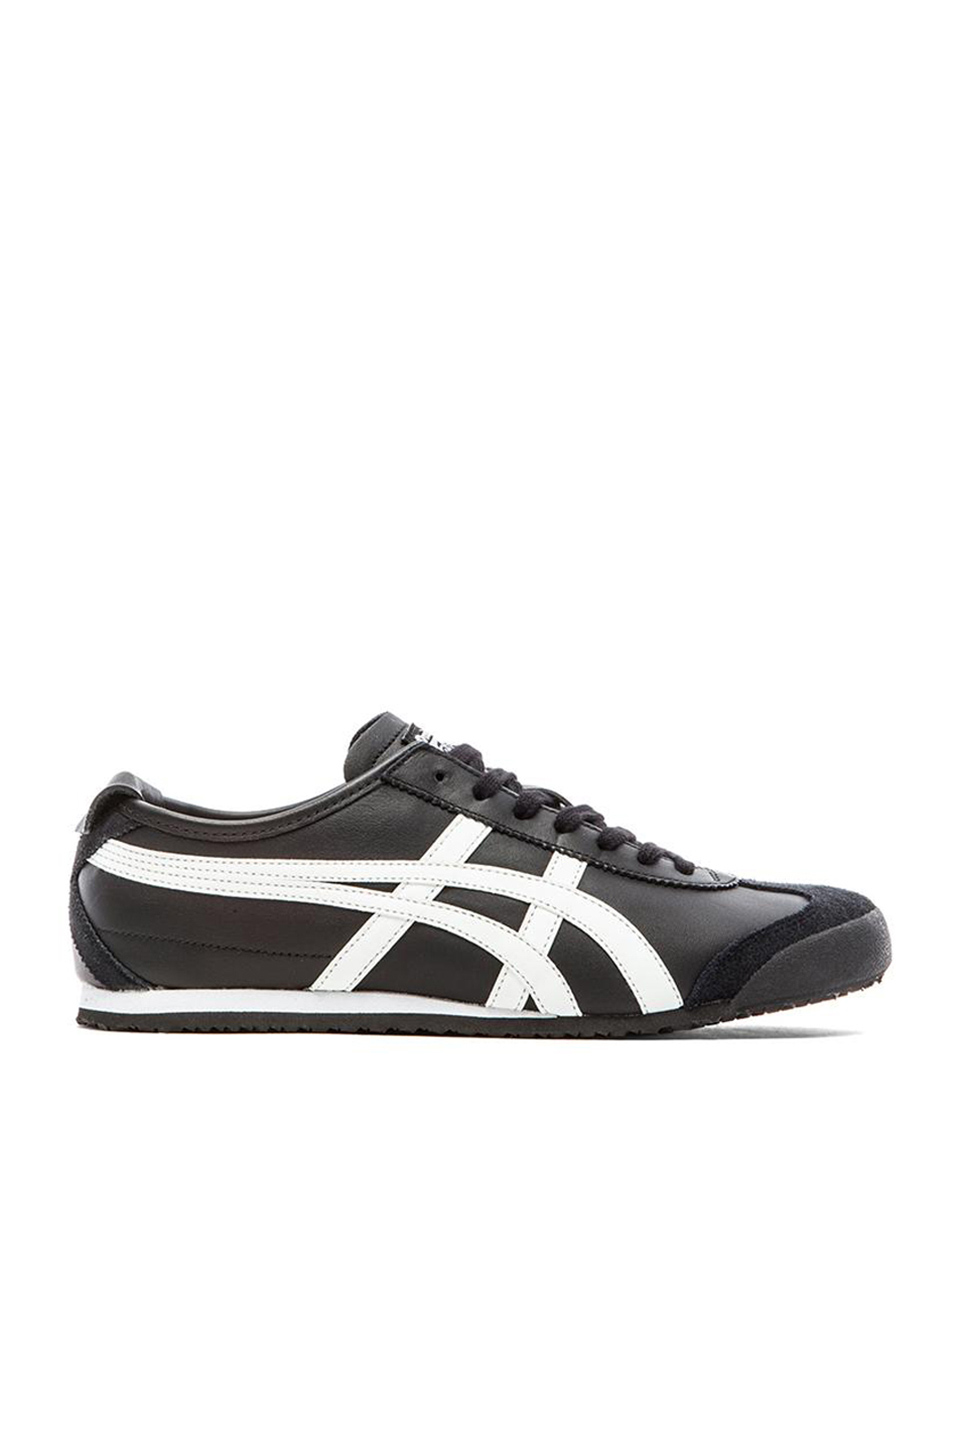 promo code a8a9a 11cc5 Mexico 66 Leather Trainers in Black White